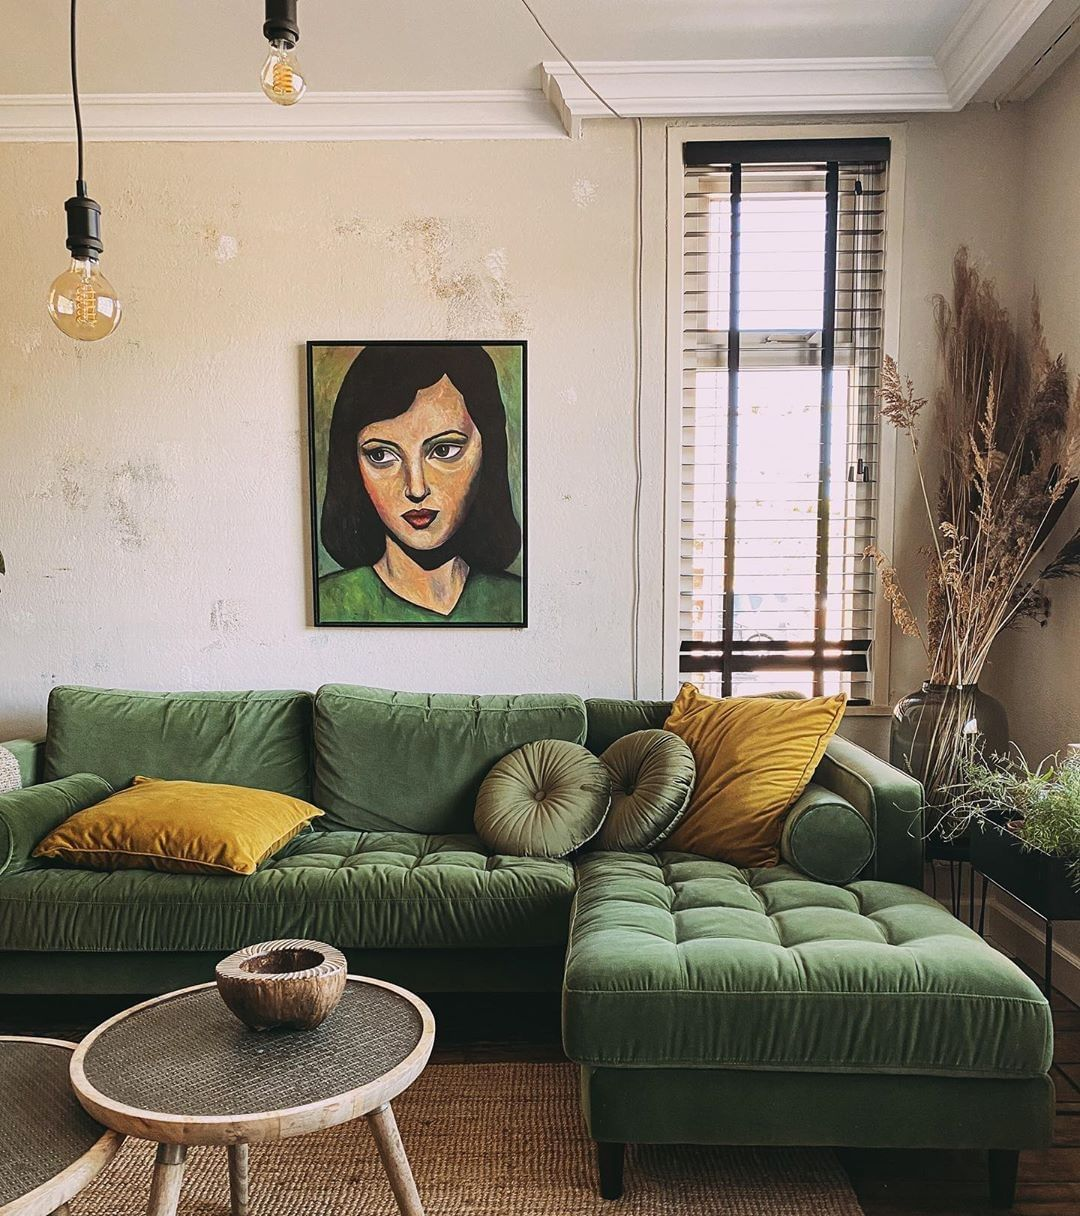 Bohemian Decors On Instagram Via Cosiesthome Do You Like The Green Yellow Combo Living Room Green Apartment Interior Decorating Green Couch Living Room Living room yellow green